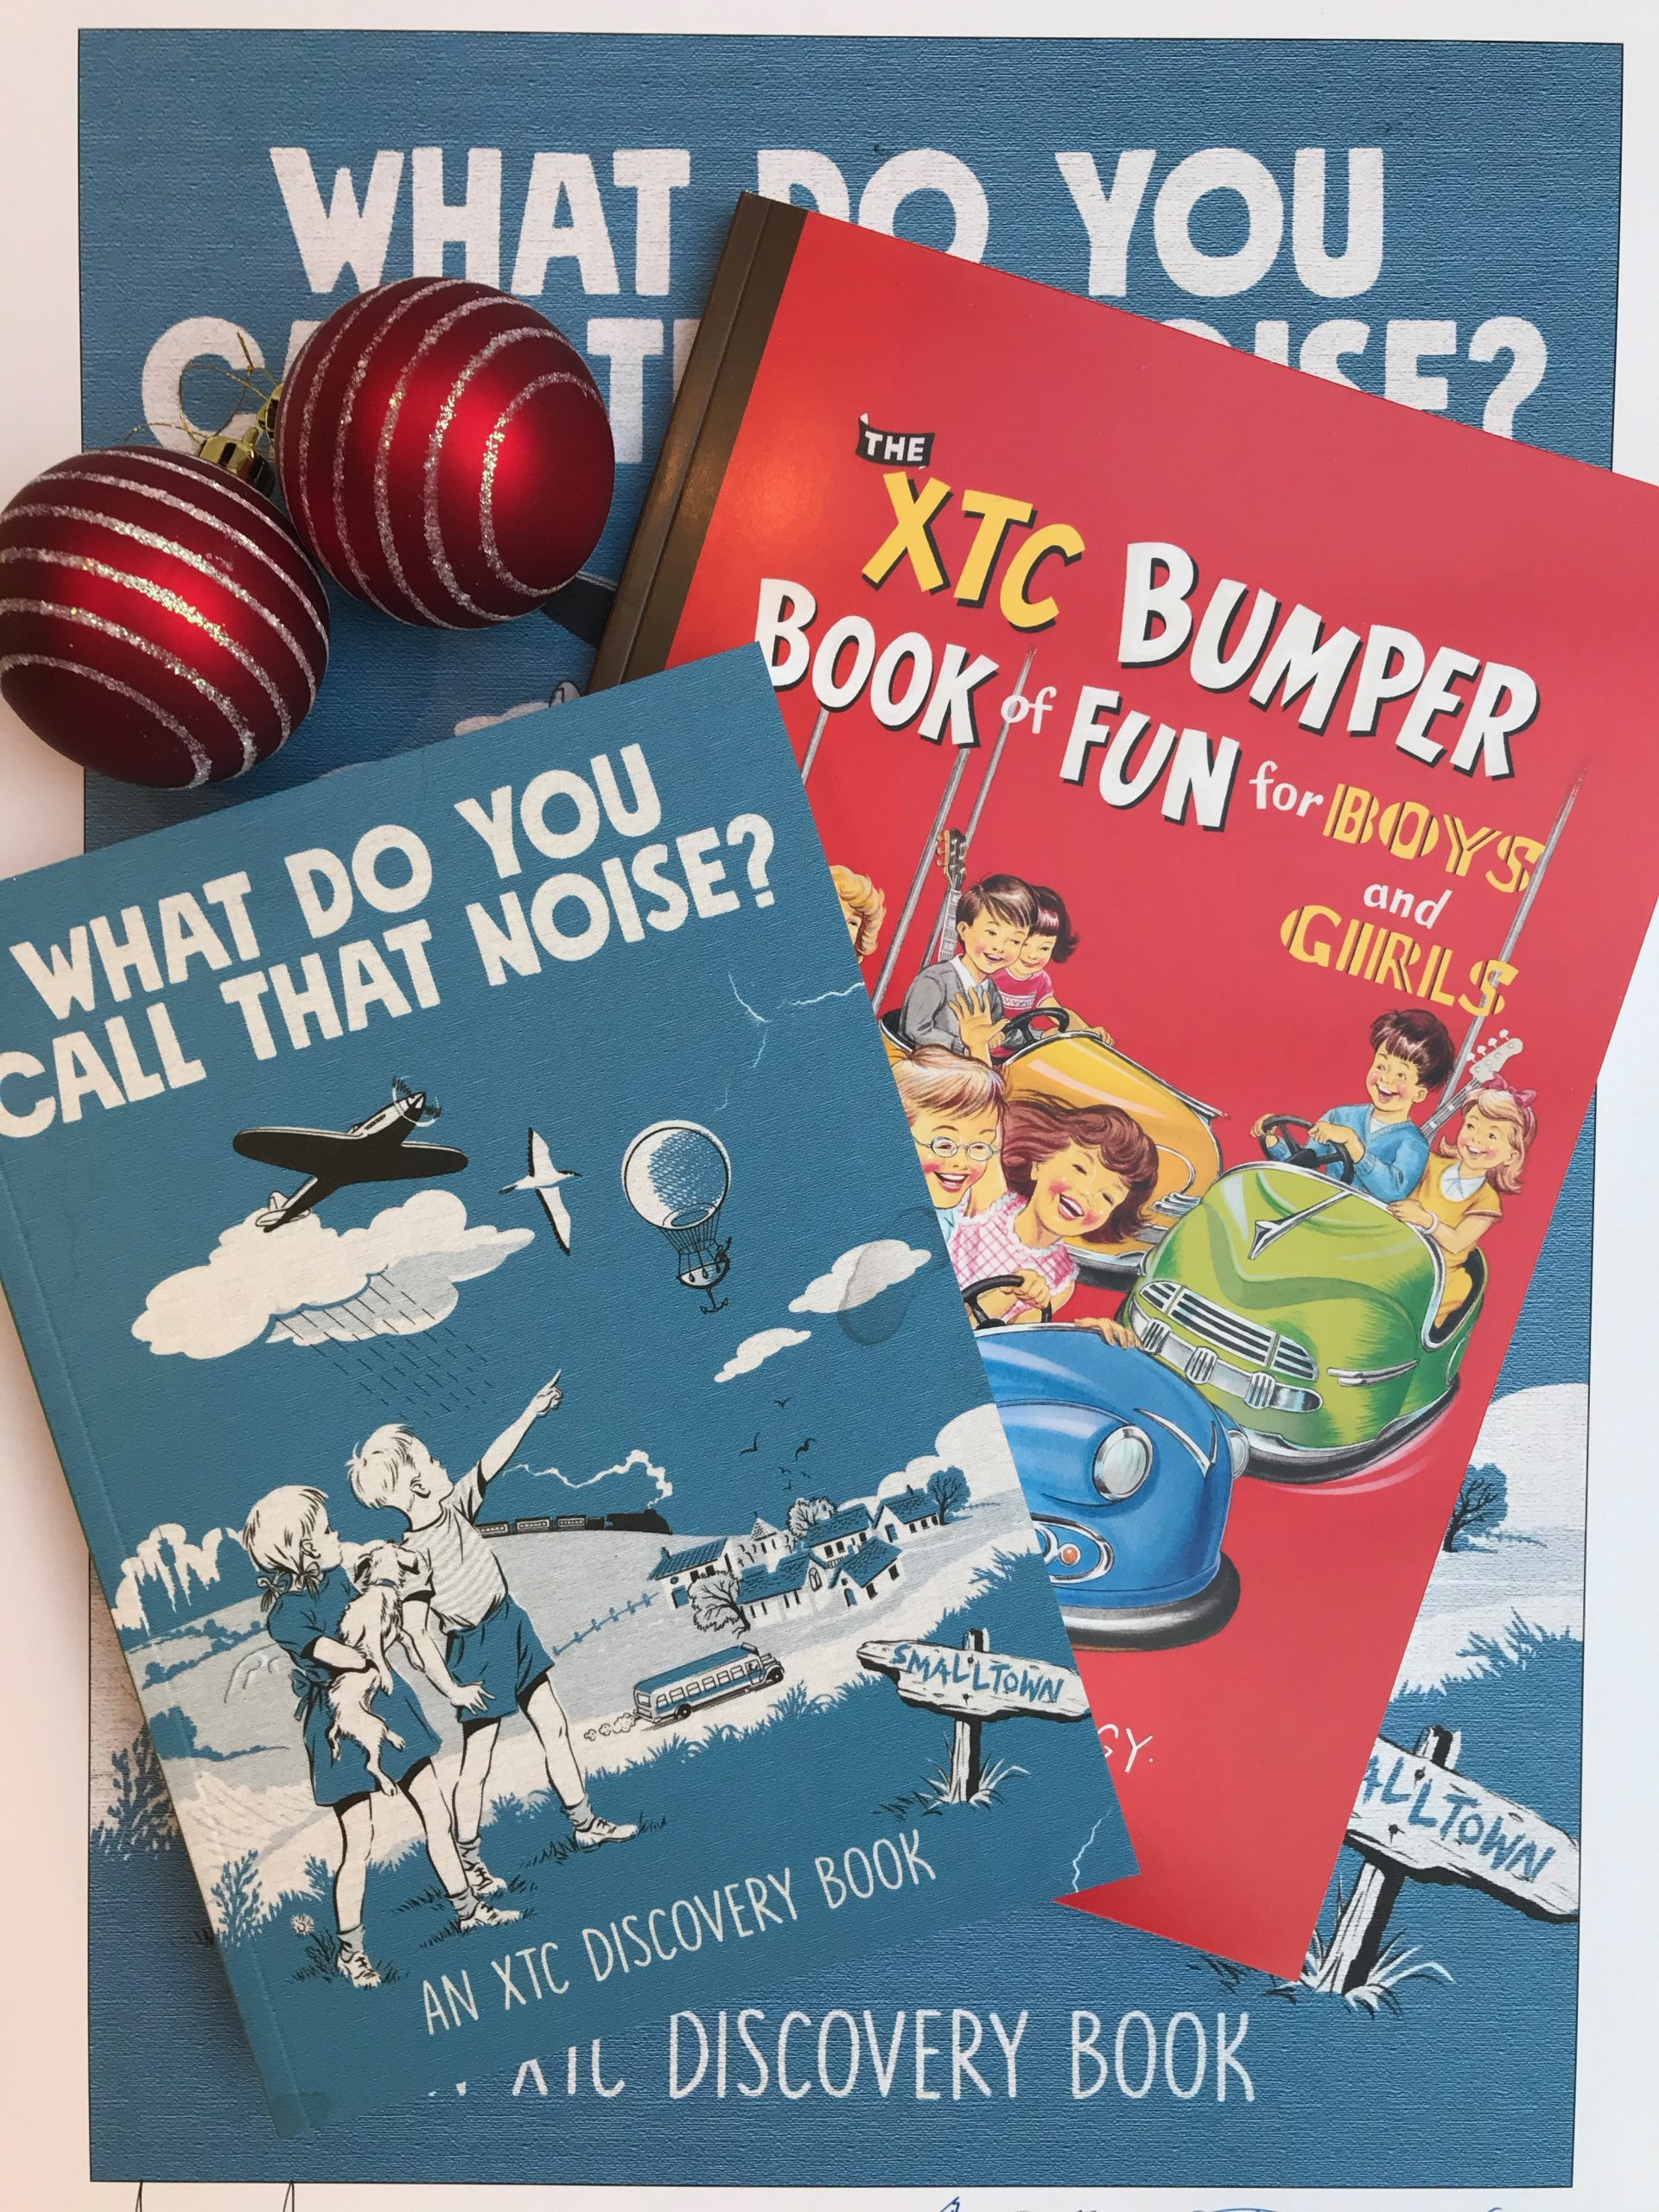 Save on The XTC Bumper Book of Fun for Boys and Girls and What Do You Call That Noise? An XTC Discovery Book